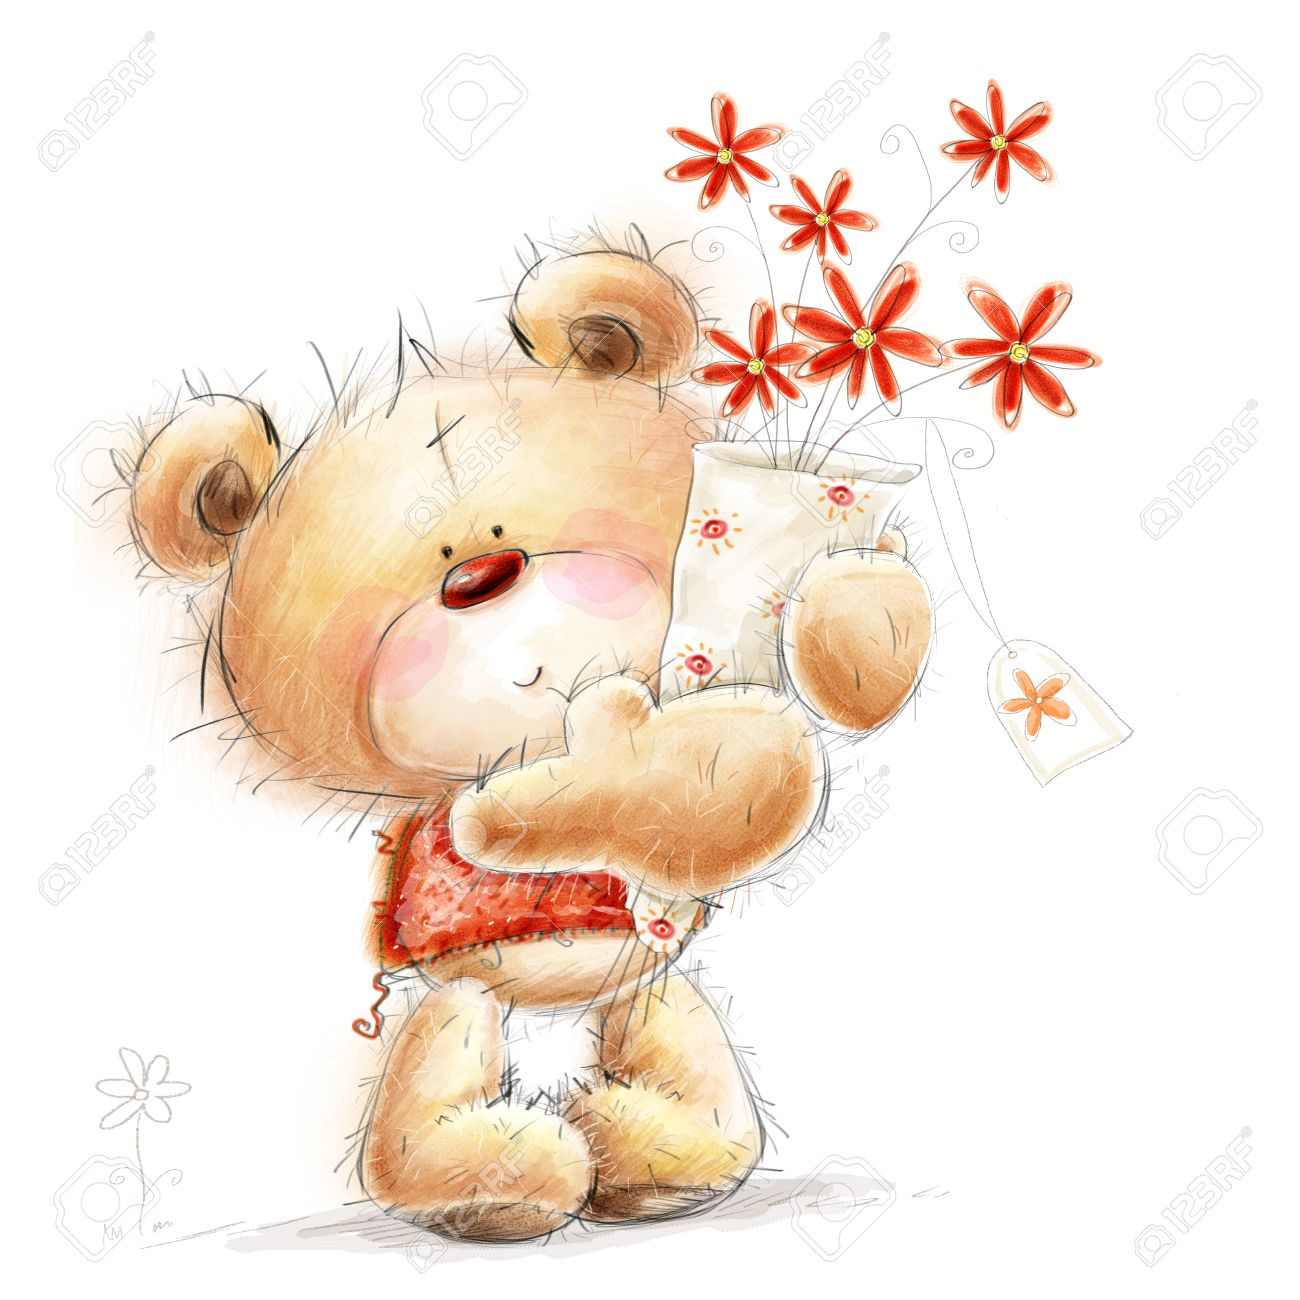 Cute Teddy Bear With The Red Flowers Background With Bear And